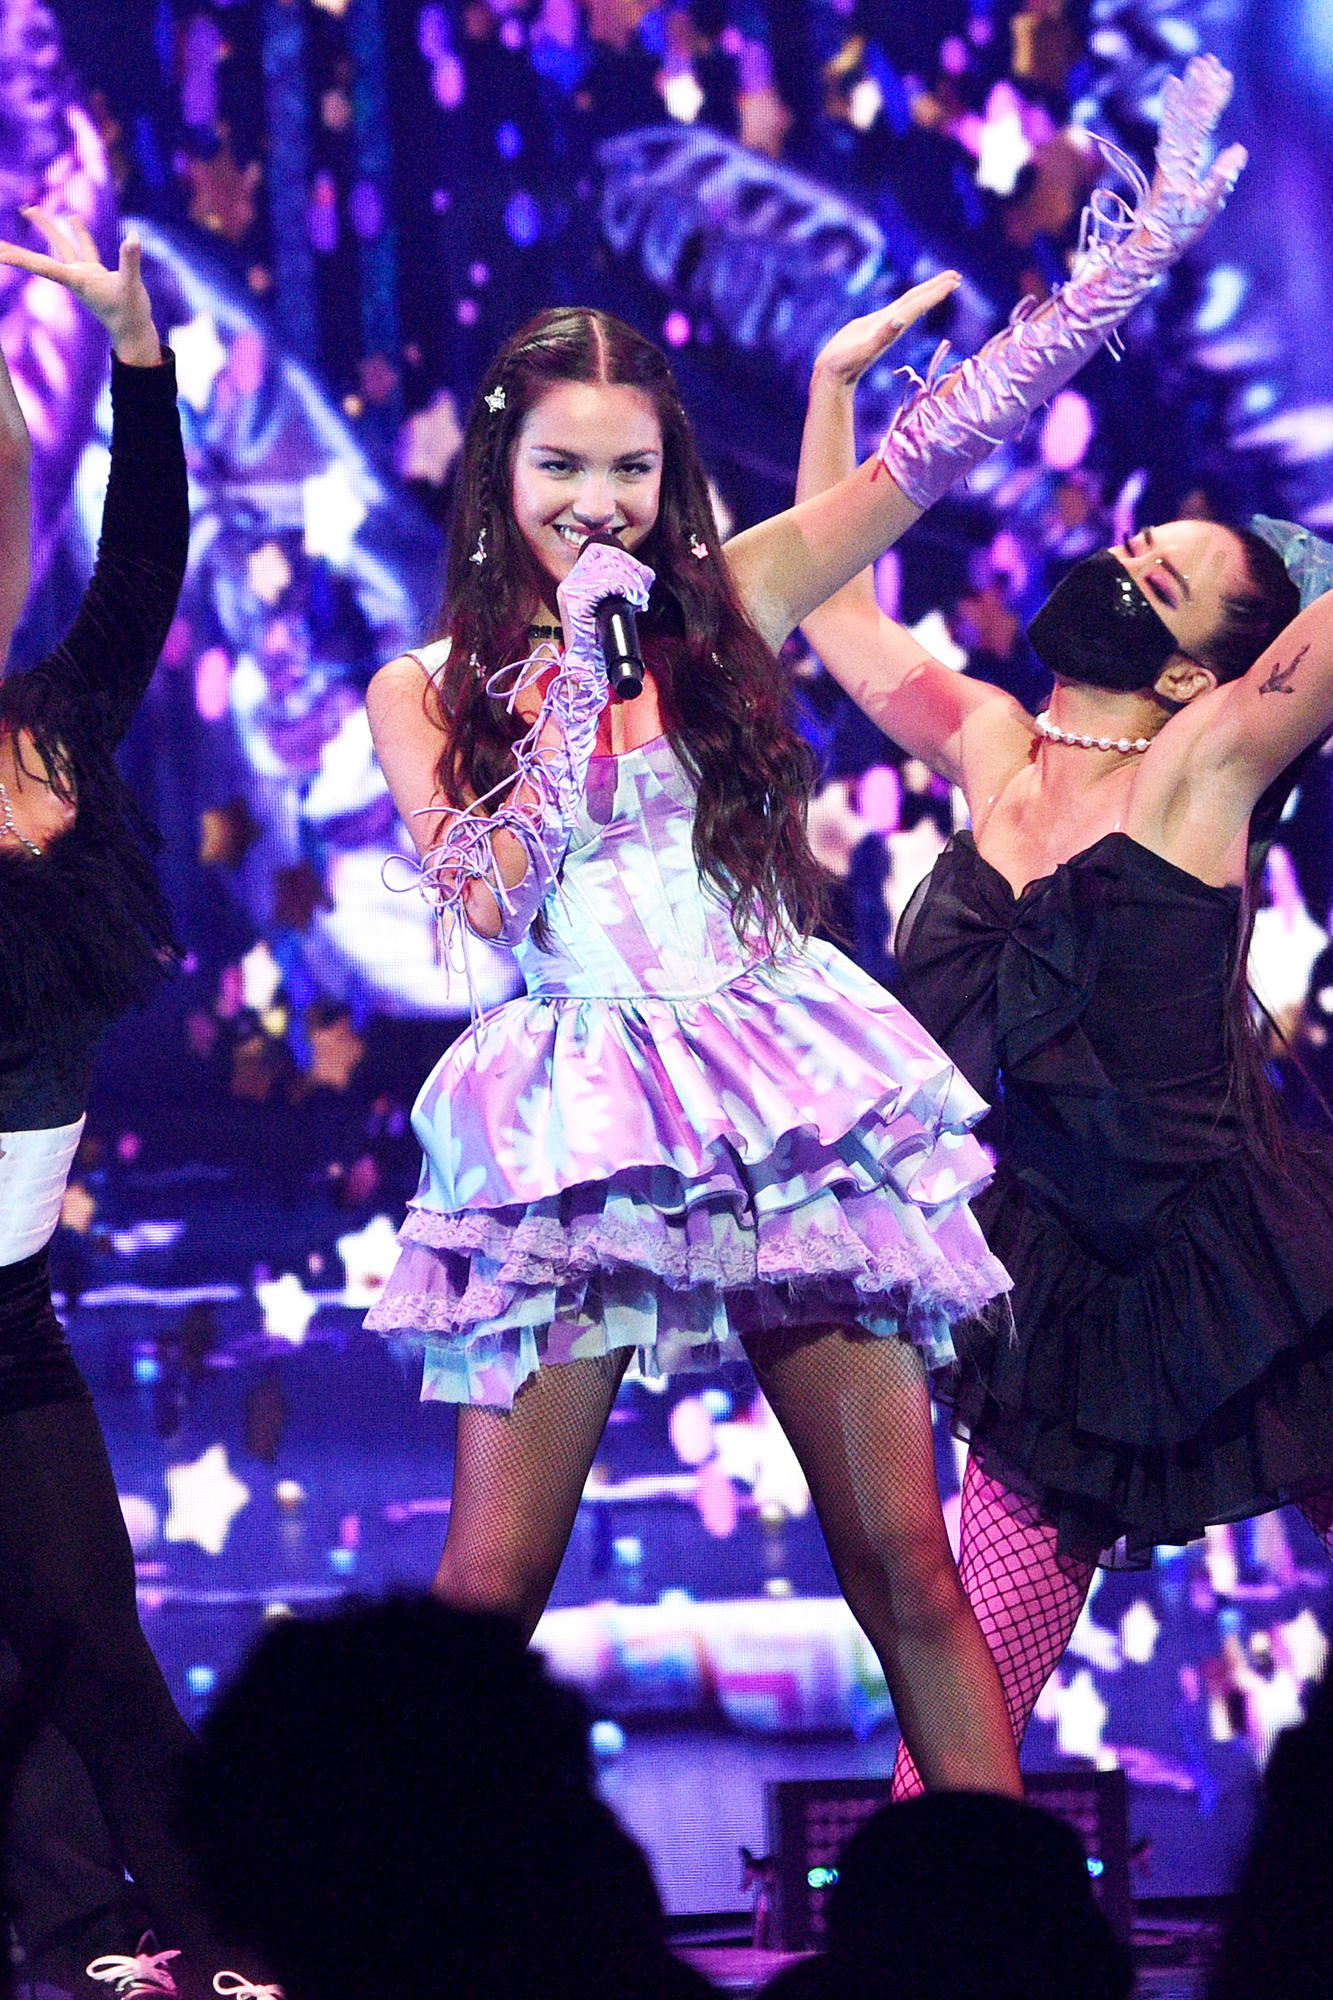 Olivia Rodrigo performs onstage during the 2021 MTV Video Music Awards at Barclays Center on September 12, 2021 in the Brooklyn borough of New York City